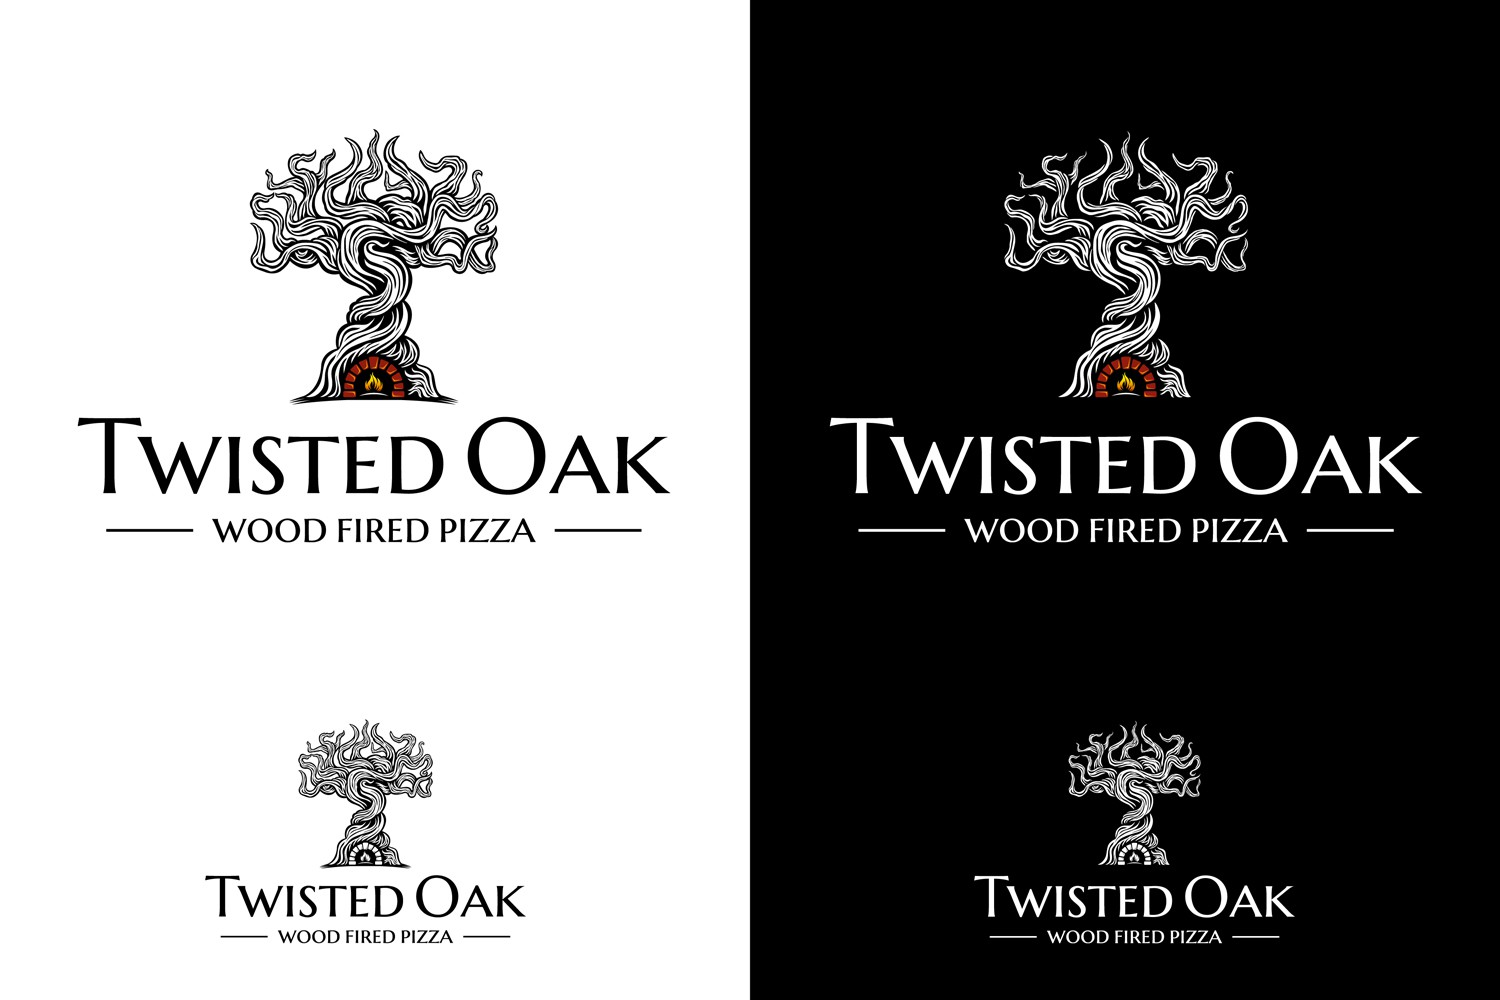 Are you a little twisted? Design a logo for our mobile wood fired pizza oven @ Twisted Oak